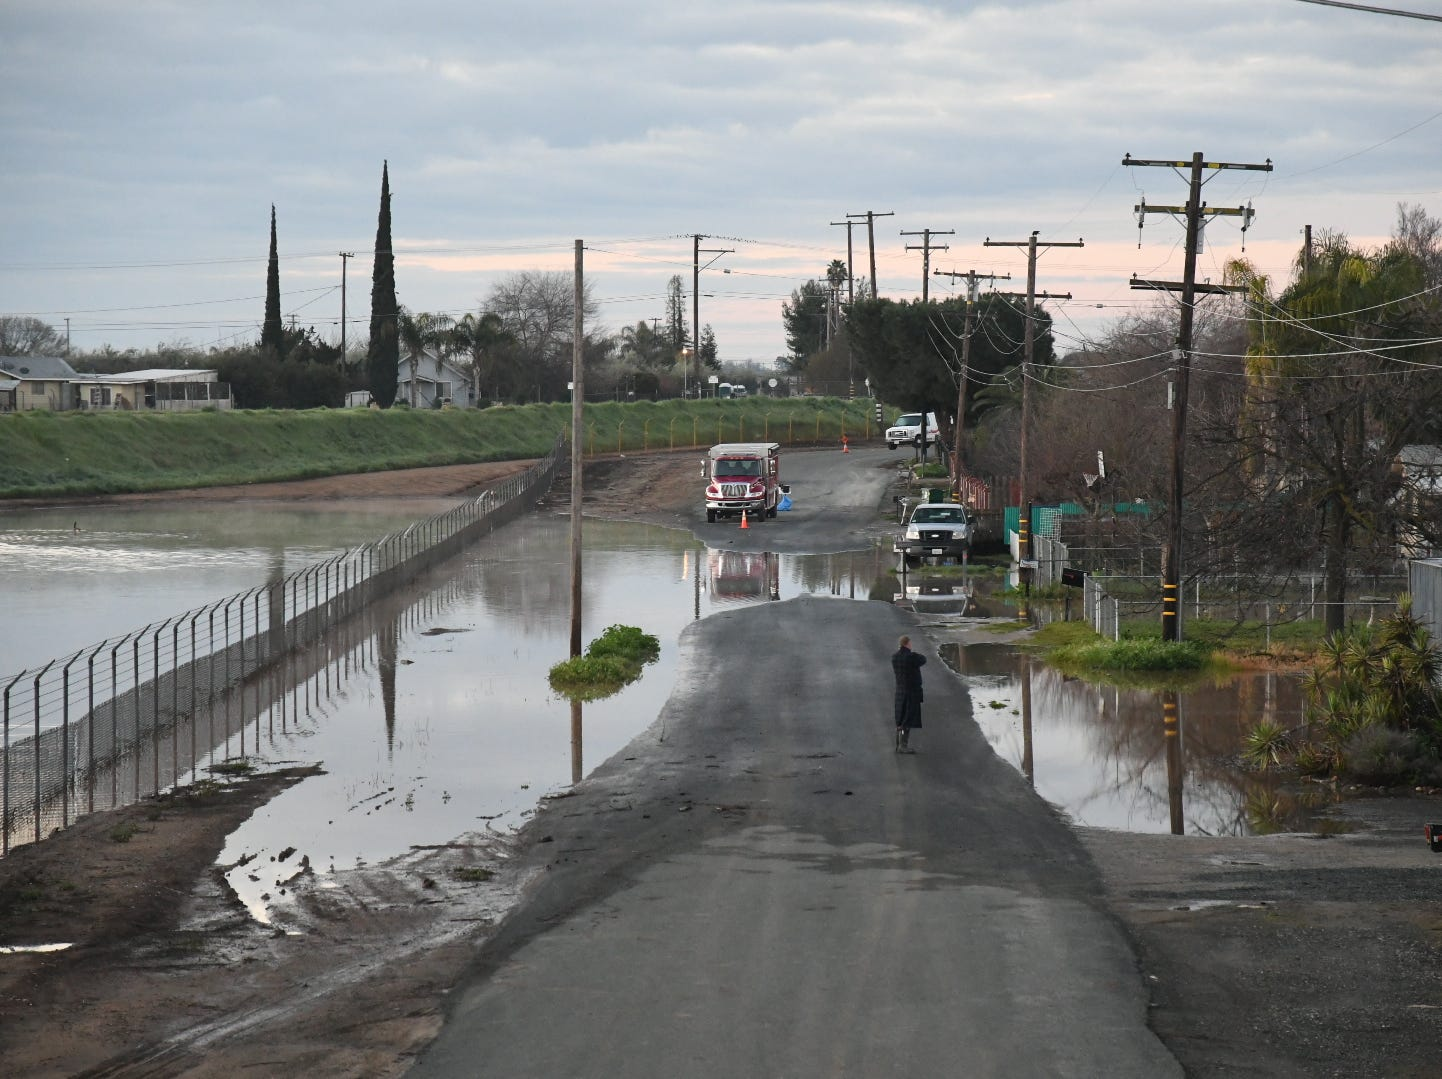 Flooding reported across southeast Tulare County after Friant-Kern Canal spills over.